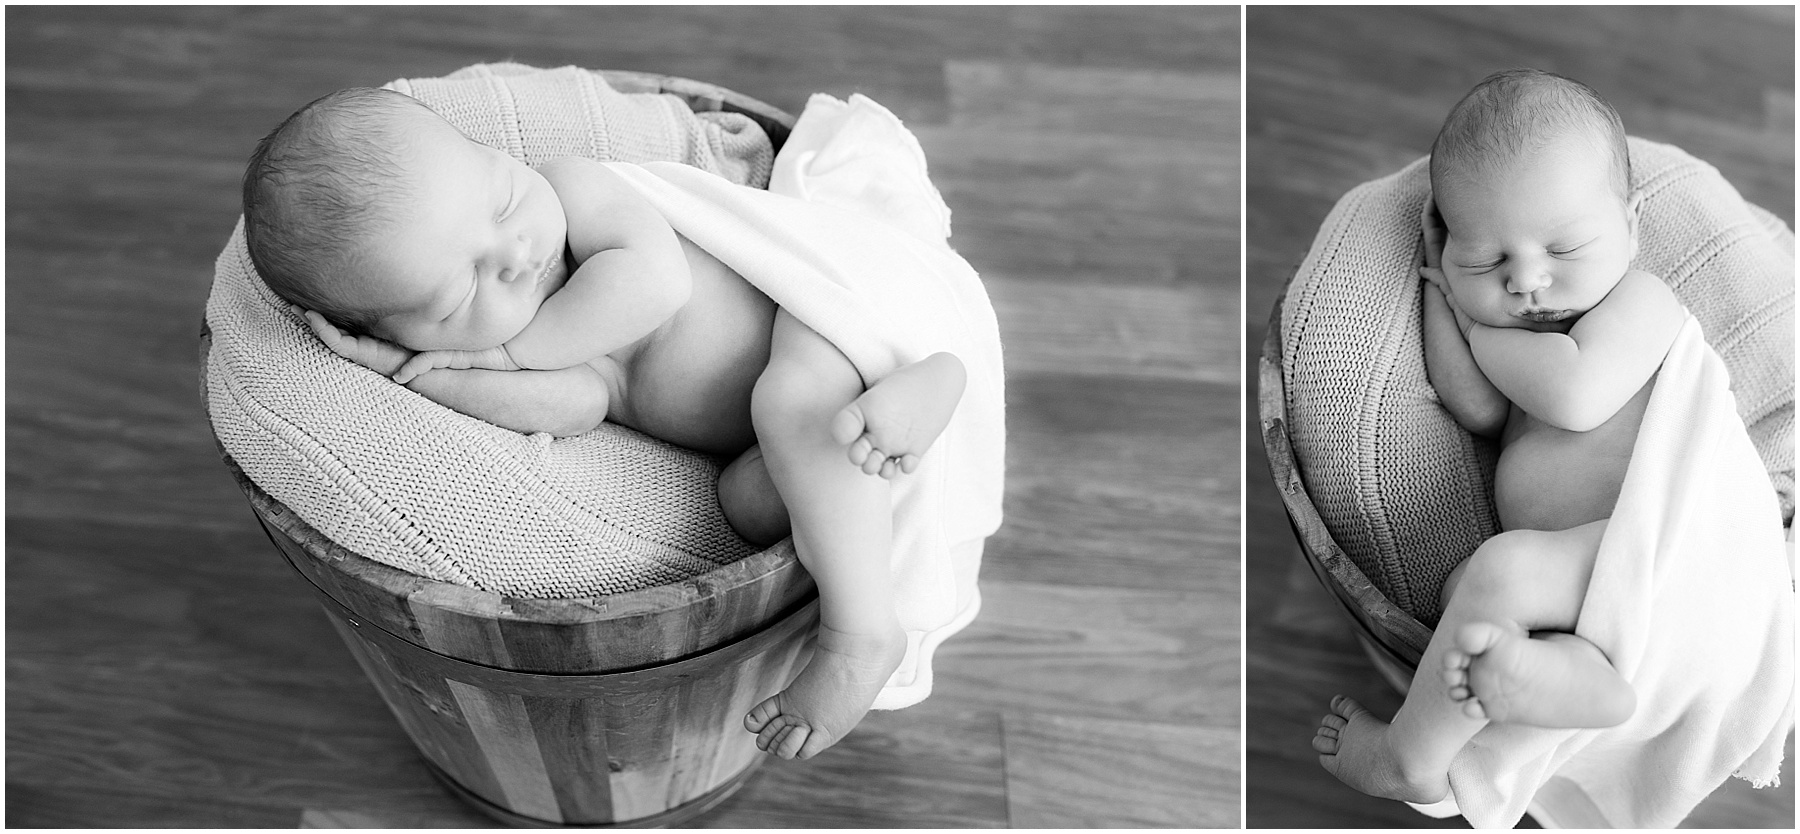 Newborn baby boy swaddled in a bucket, Indianapolis Newborn Photography, Raindancer Studios